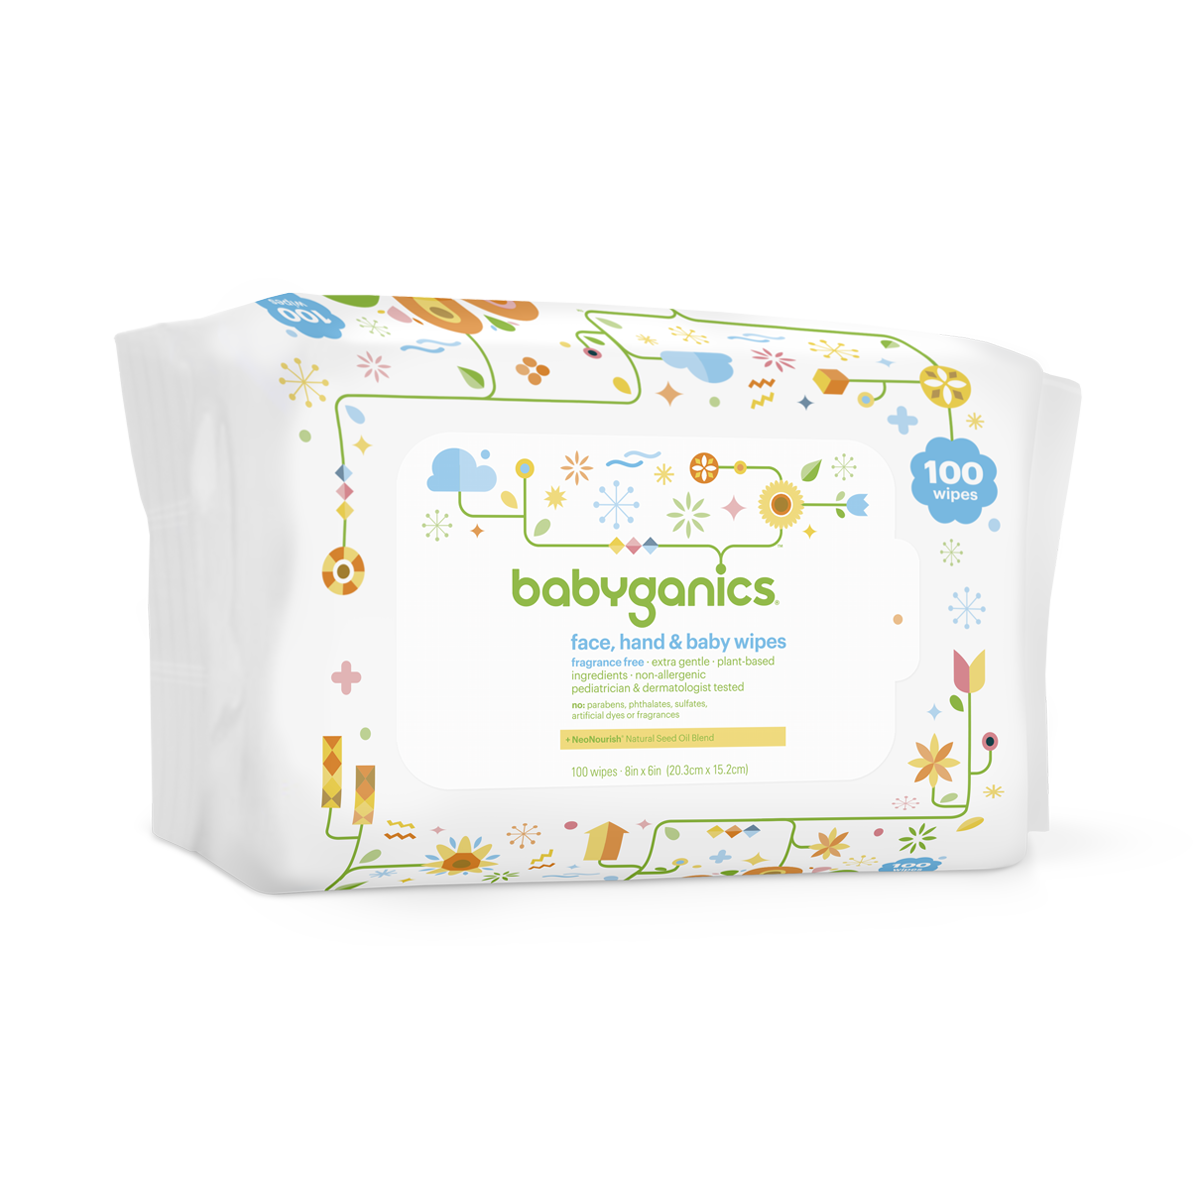 NEW BABY COTTON TREE BABY WIPES FRAGRANCE FREE PACK OF 80 WIPES